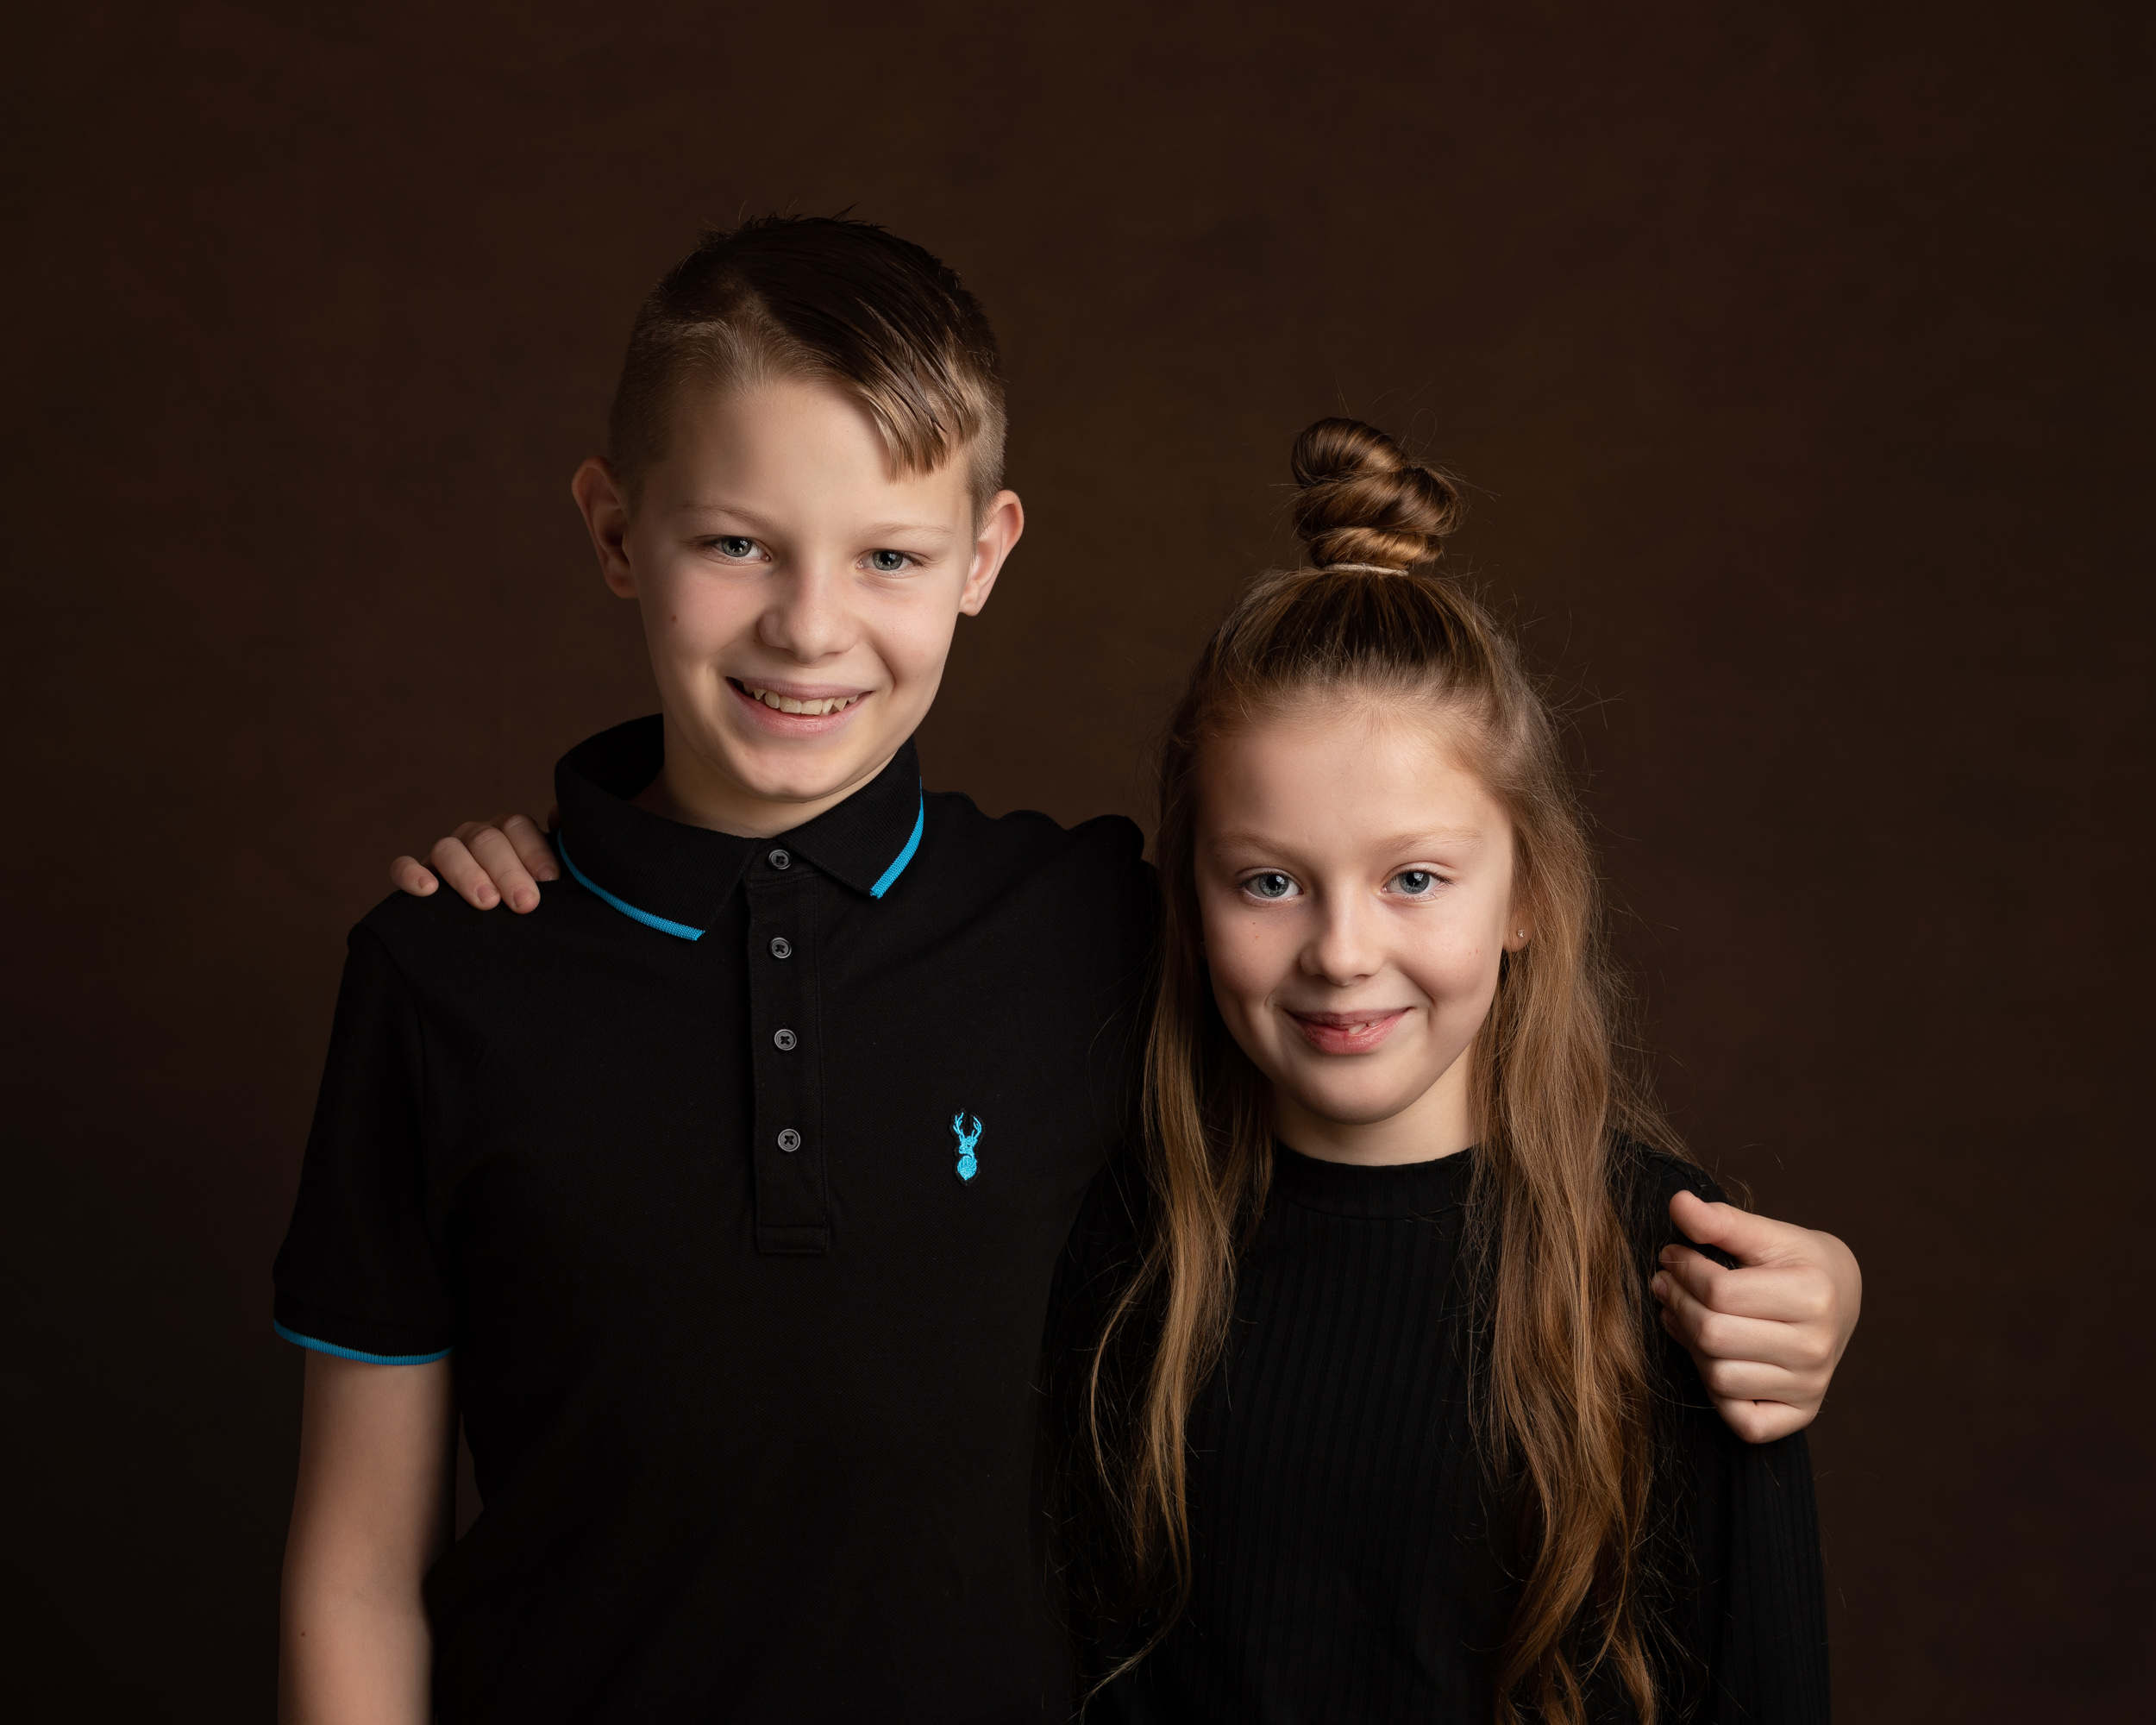 A brother and sister posing together during their Family Portrait photoshoot in Cheshire